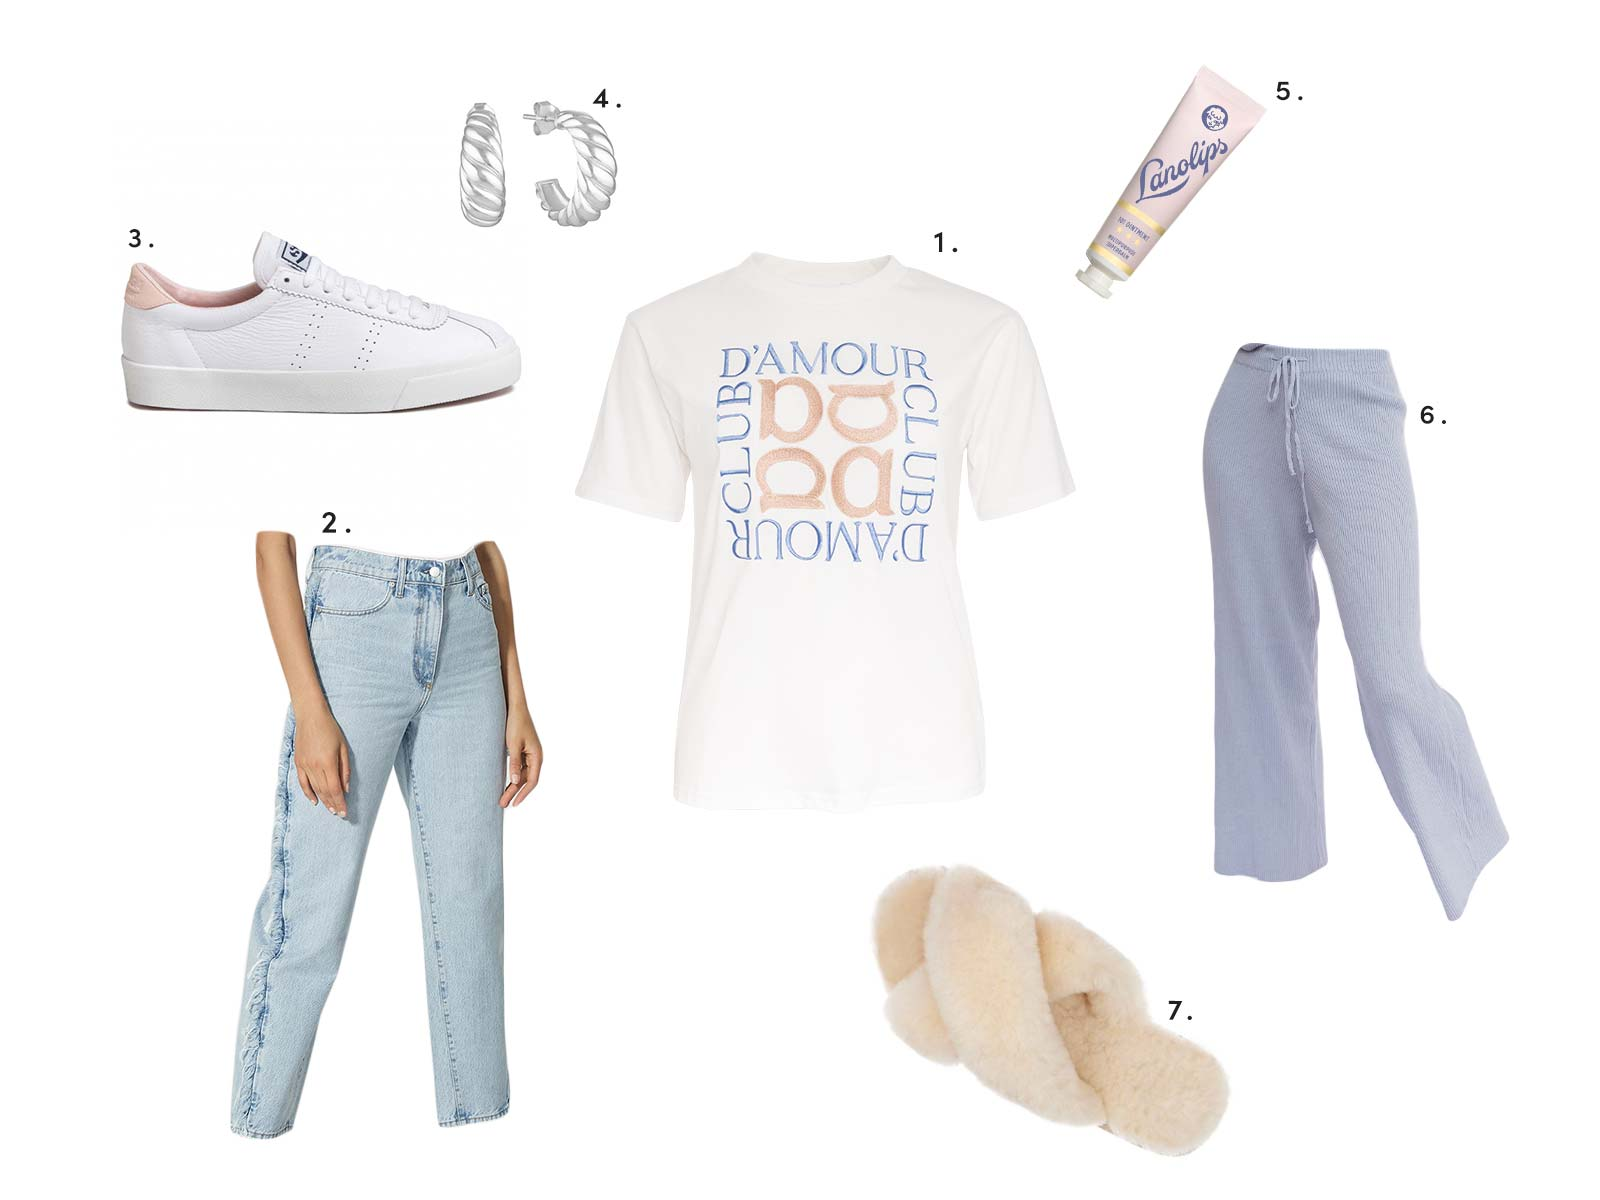 Winter Styling Apero embroidered logo tee, denim pants, sneakers and more